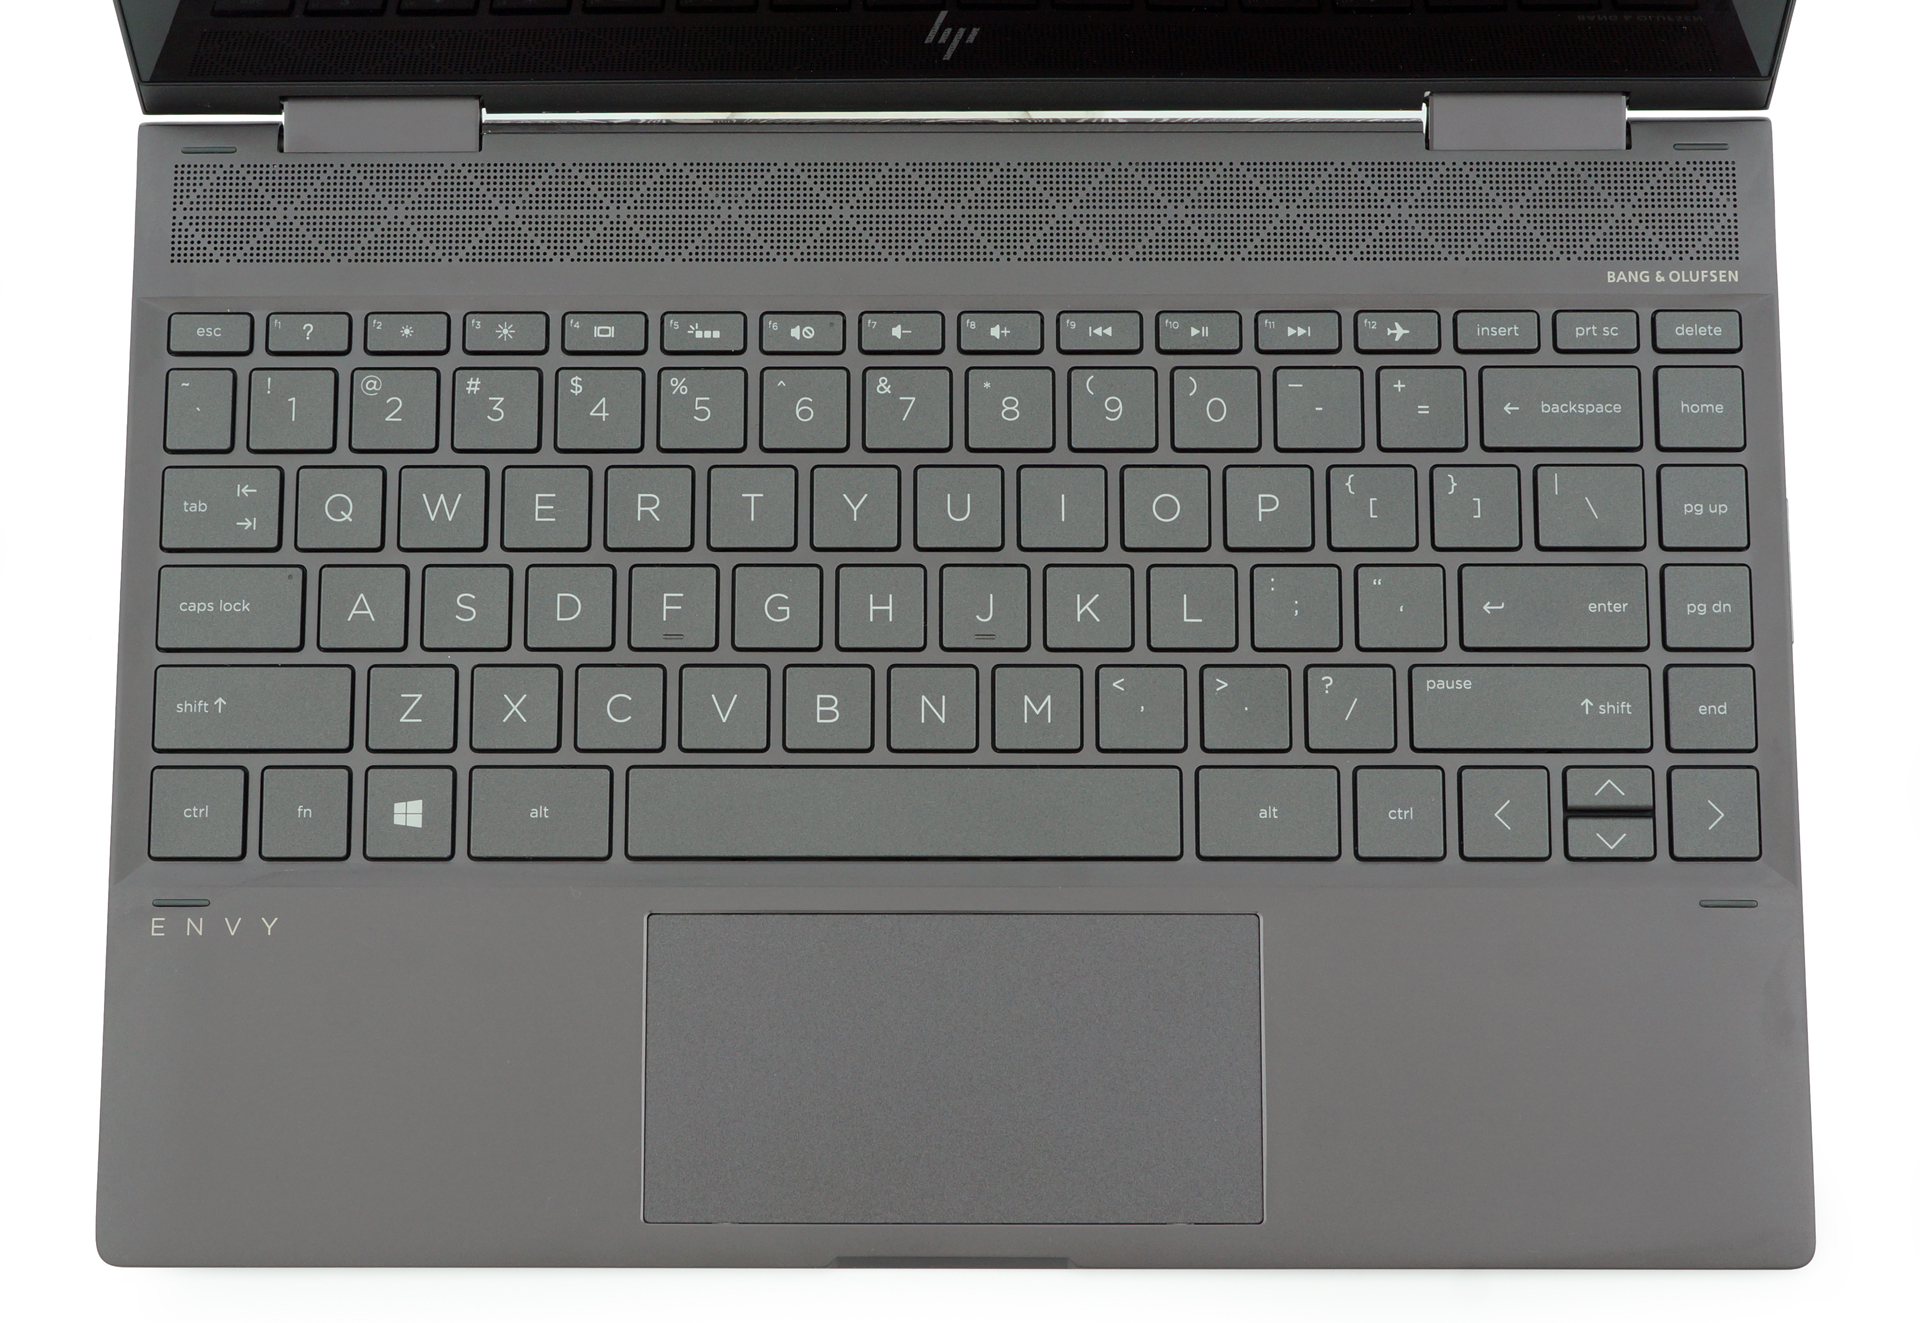 HP Envy 13 x360 review – a 2-in-1 convertible powered by Ryzen